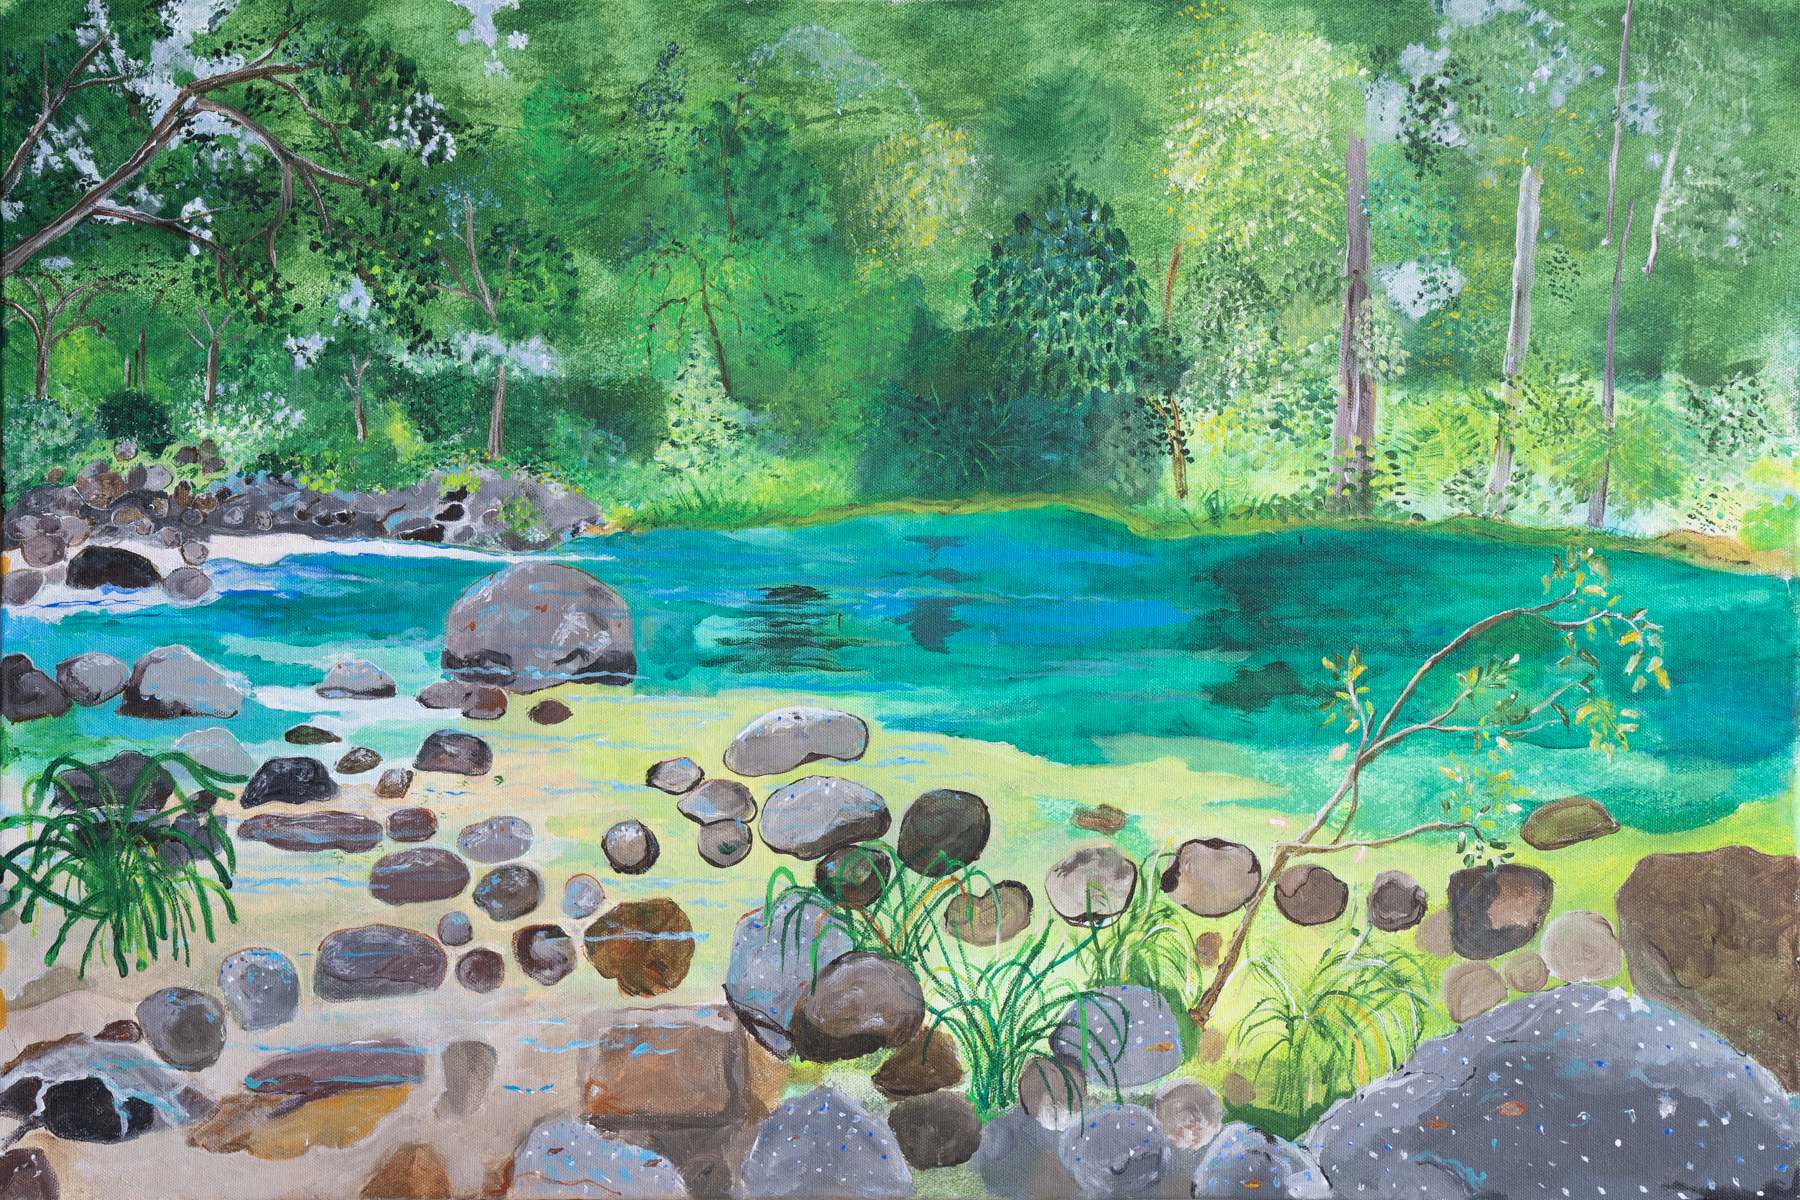 Nature painting, showing a pond, stones and trees